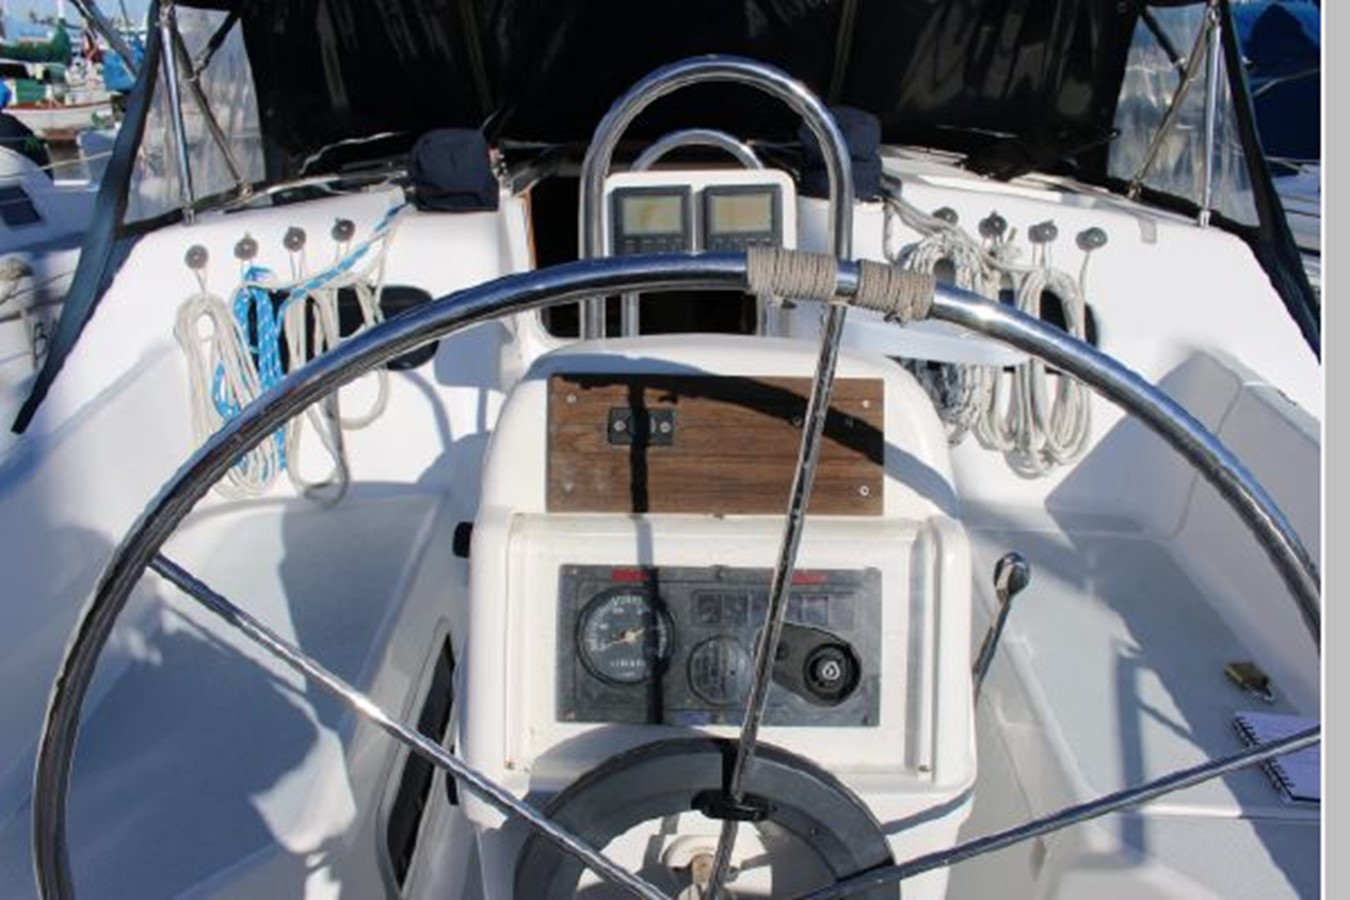 1993 HUNTER Vision 36 Cruising Sailboat 2599520